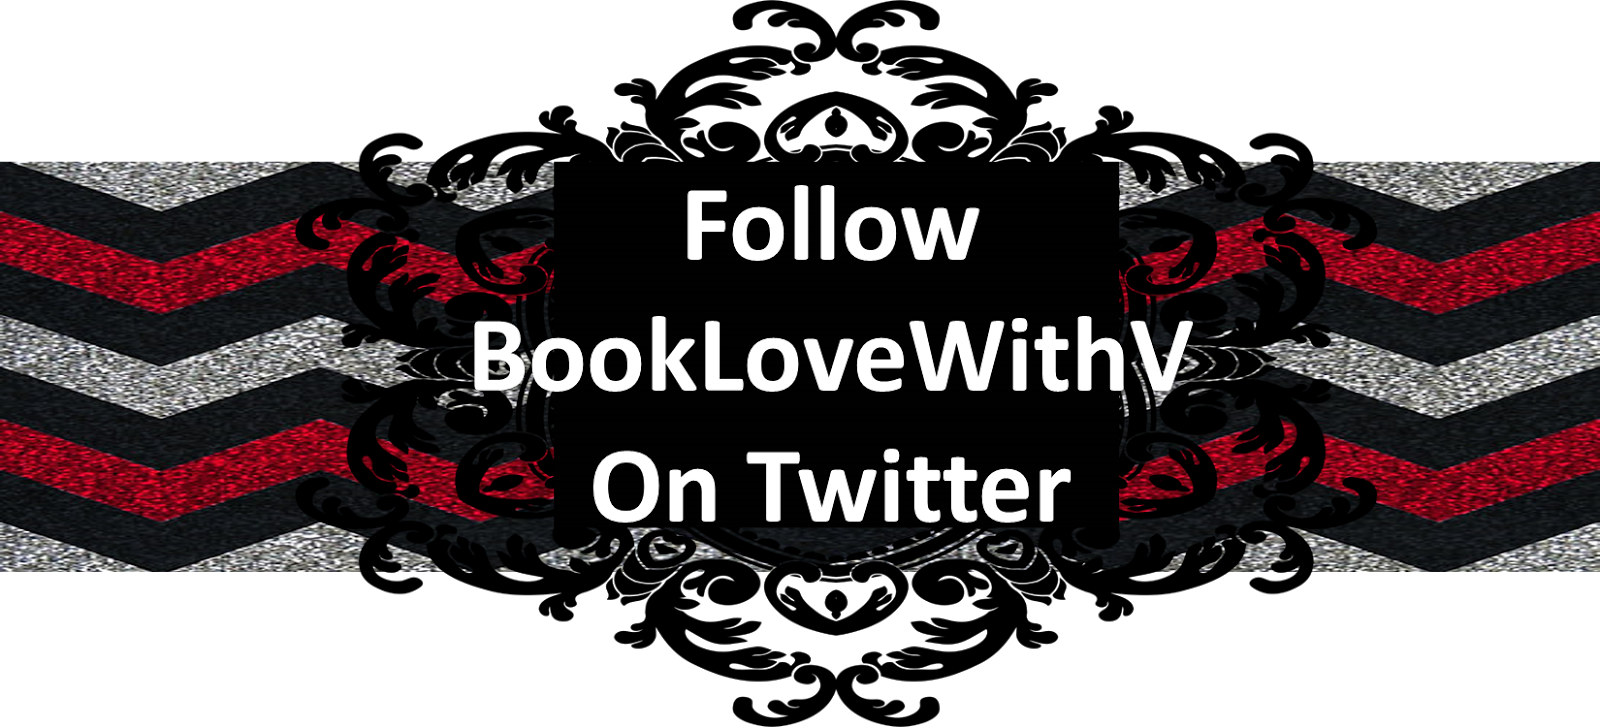 Follow BookLoveWithV On Twitter